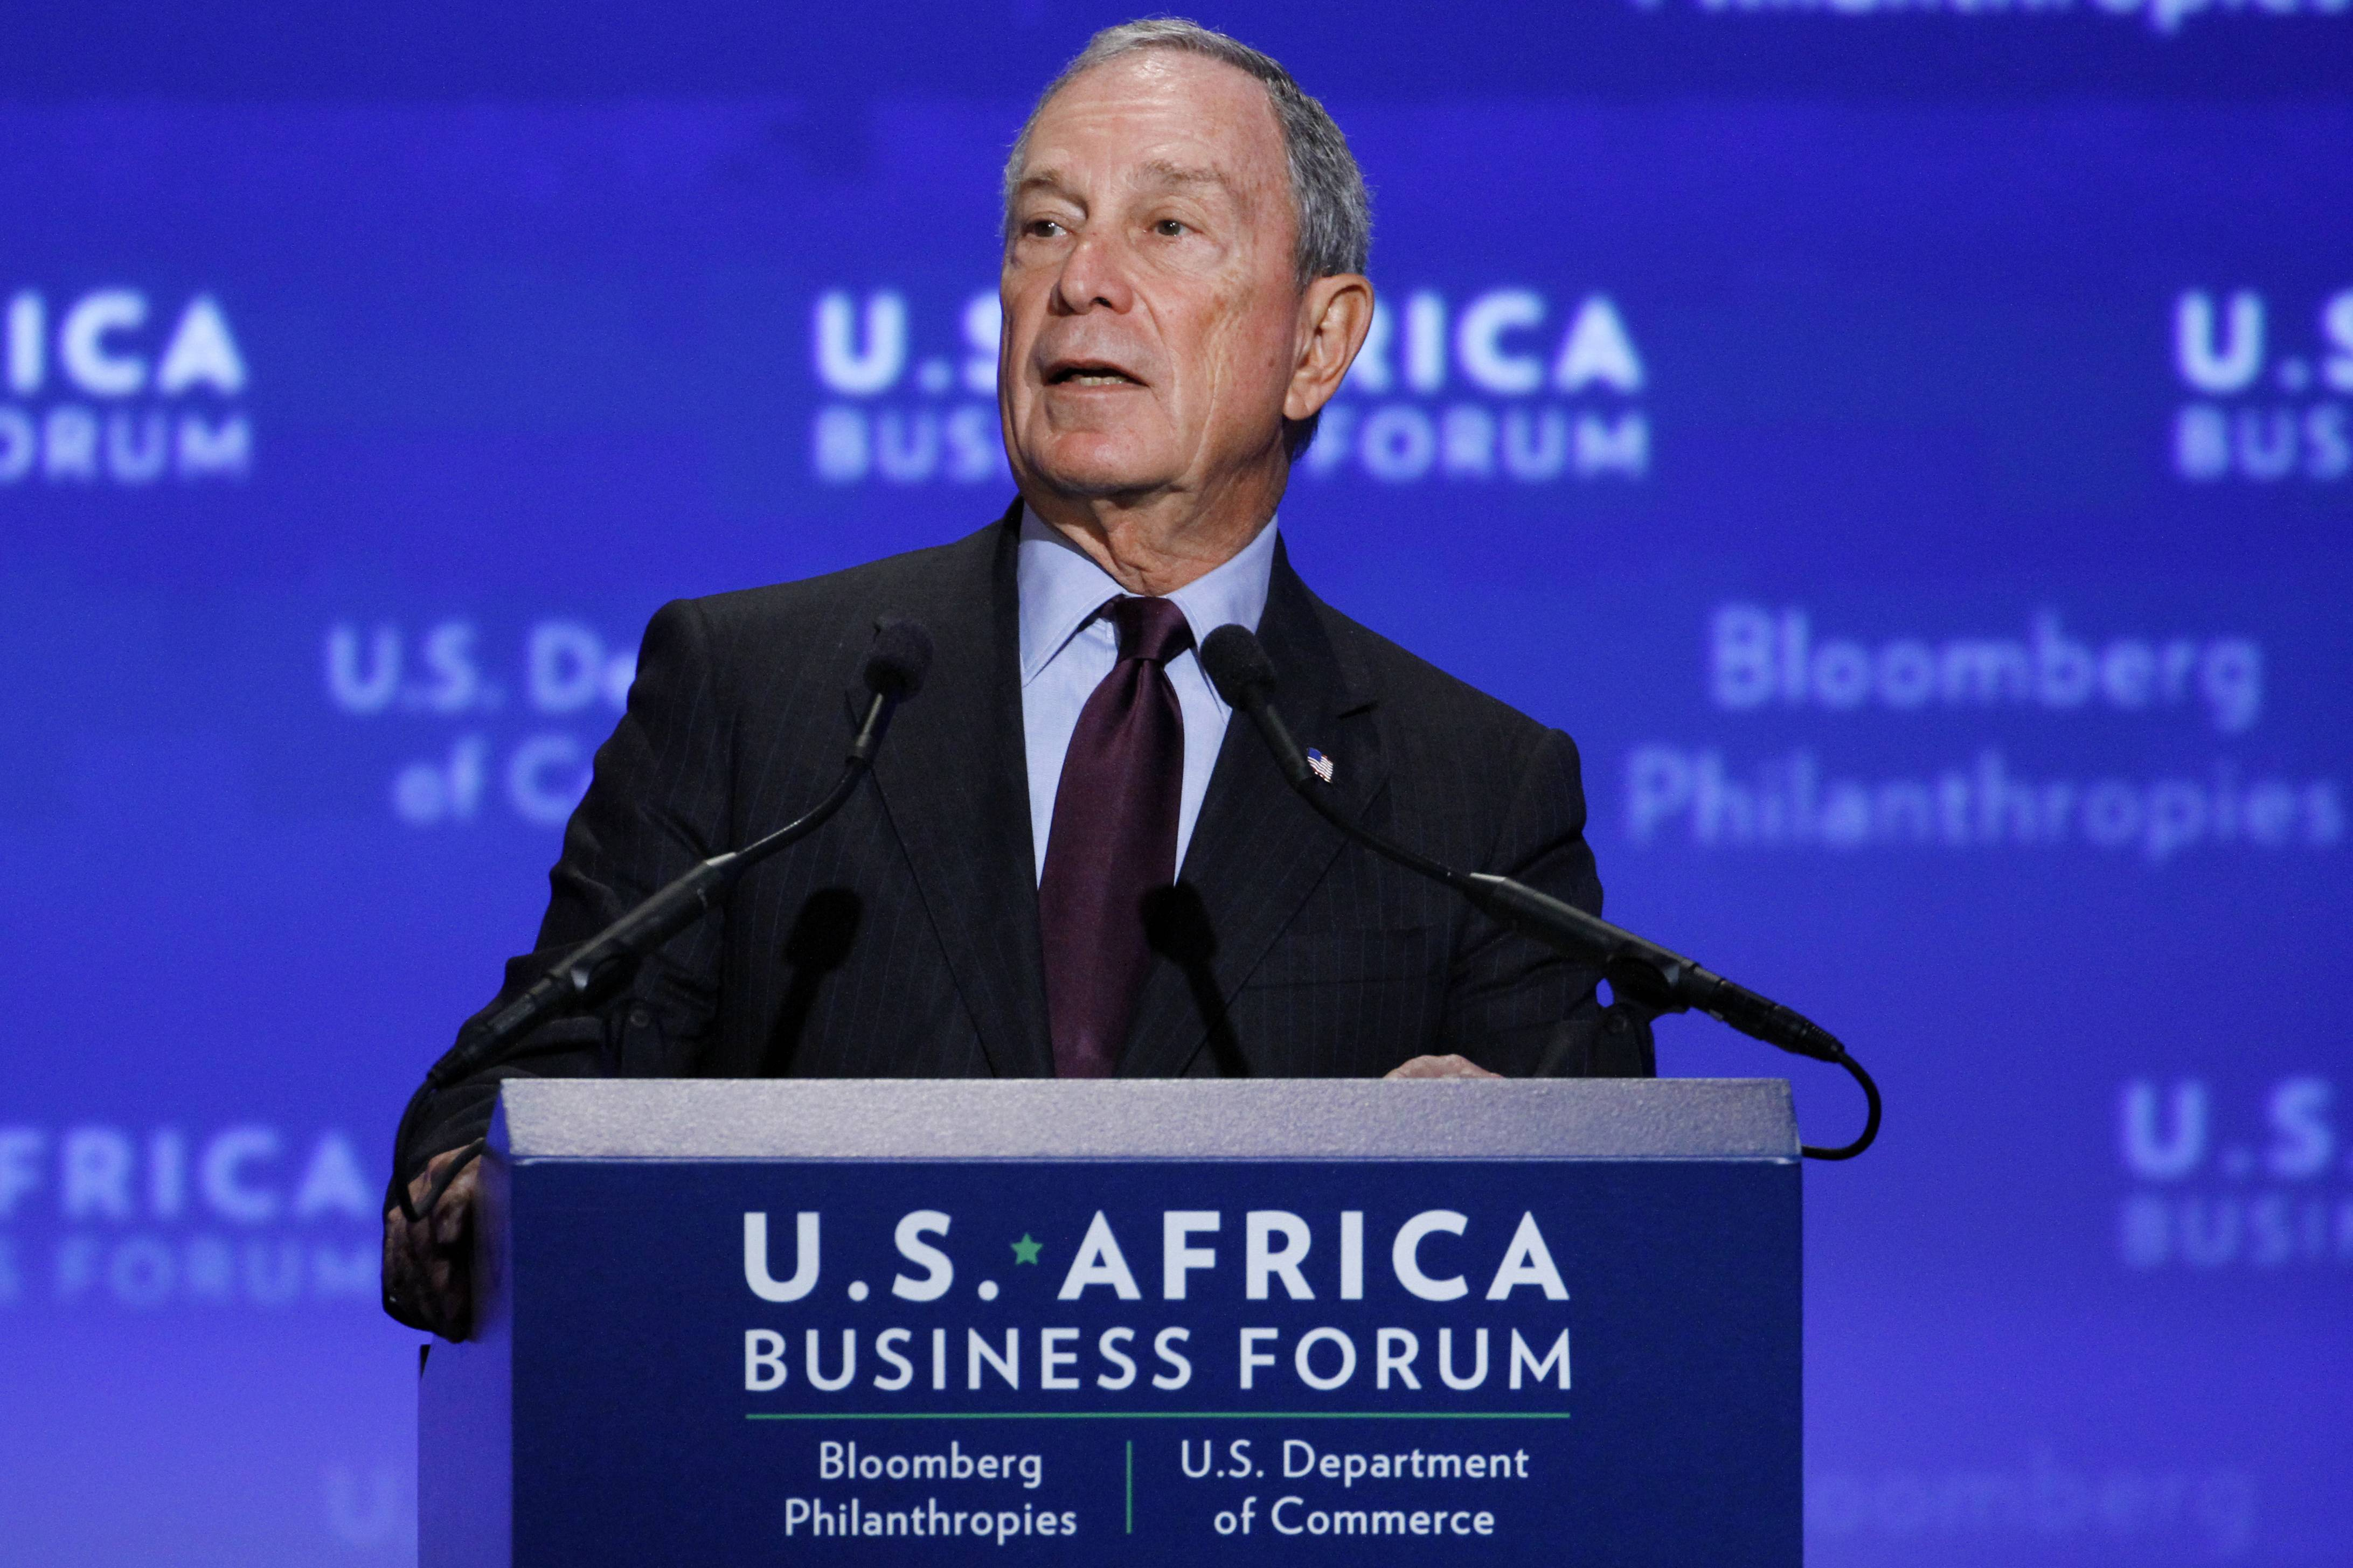 American cities looking to be more innovative in how they address local issues can now get a helping hand from former New York City Mayor Michael Bloomberg's charitable foundation.